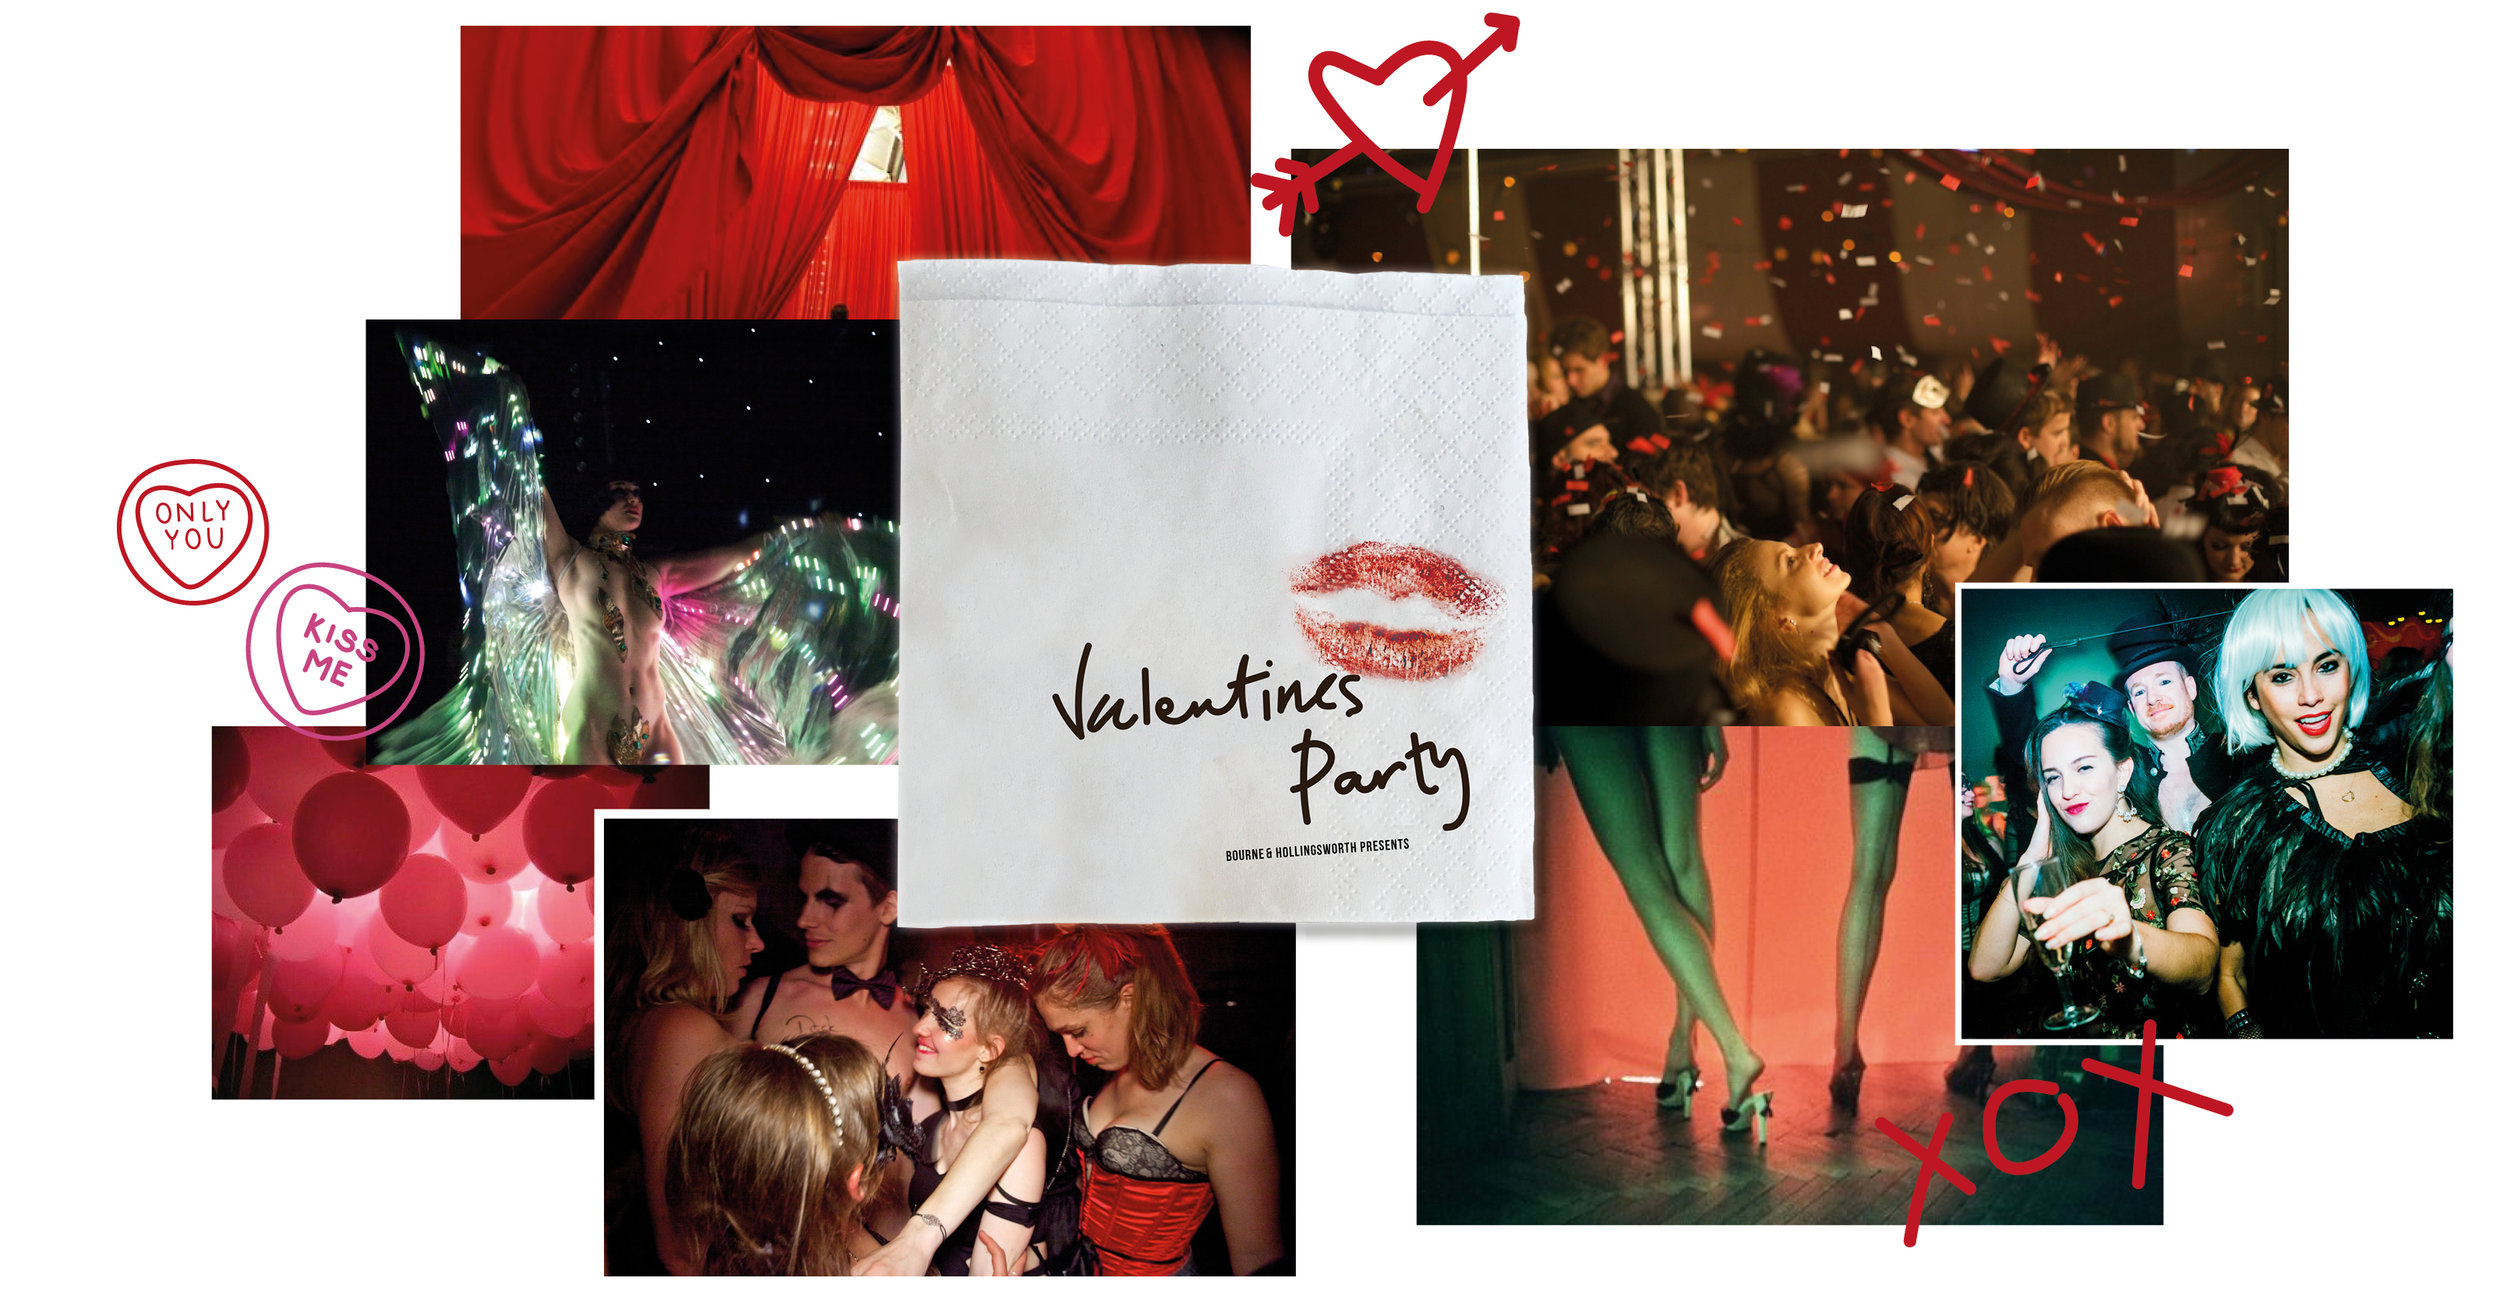 Valentine's Party - Bourne & Hollingsworth